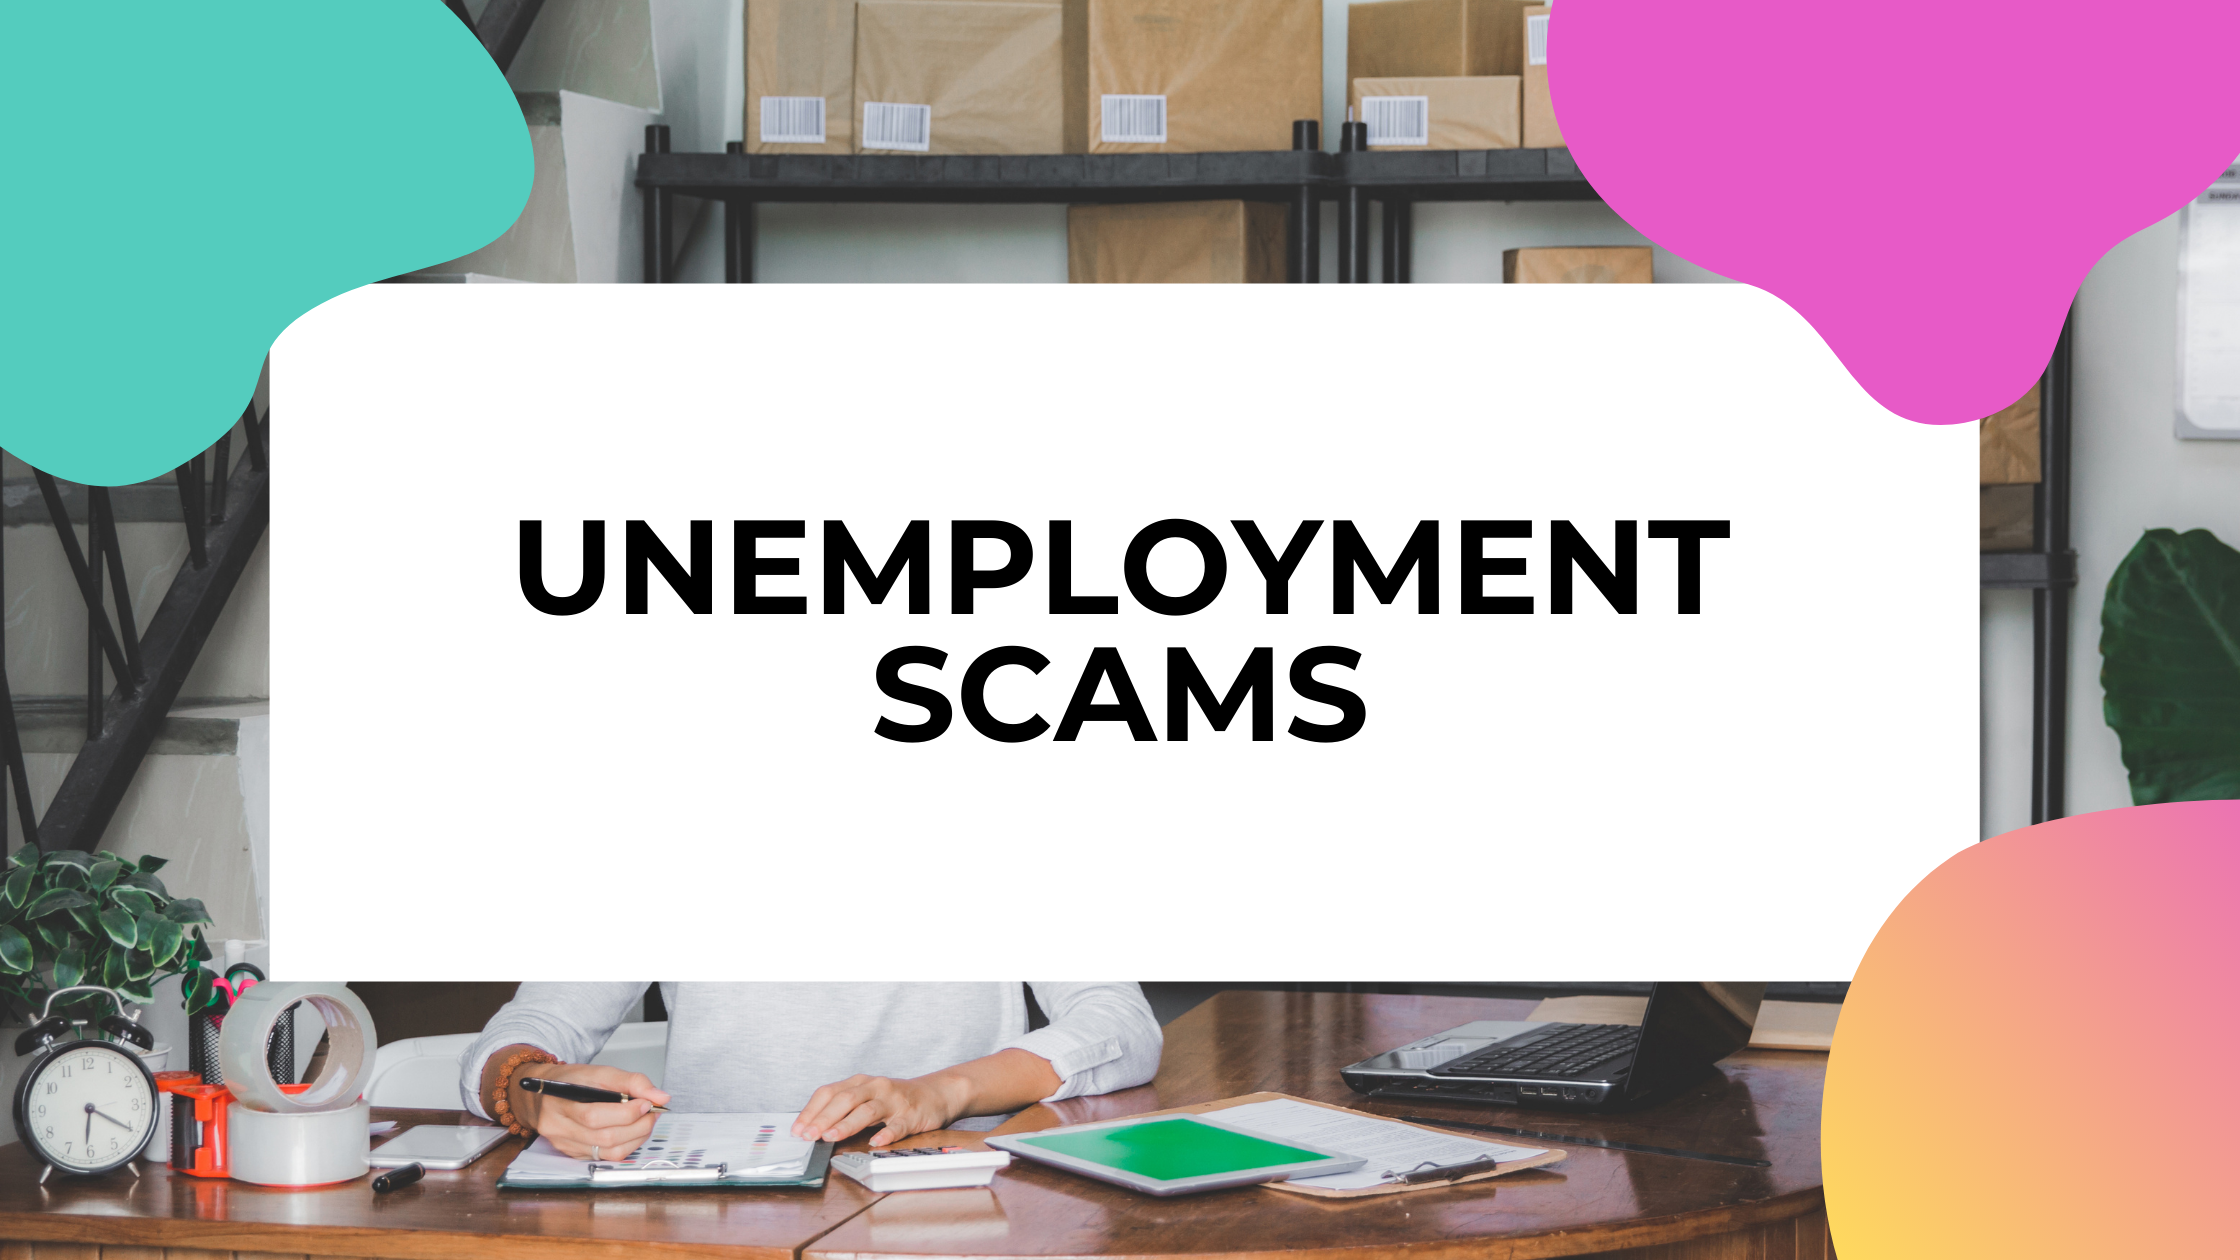 unemployment scams featured image